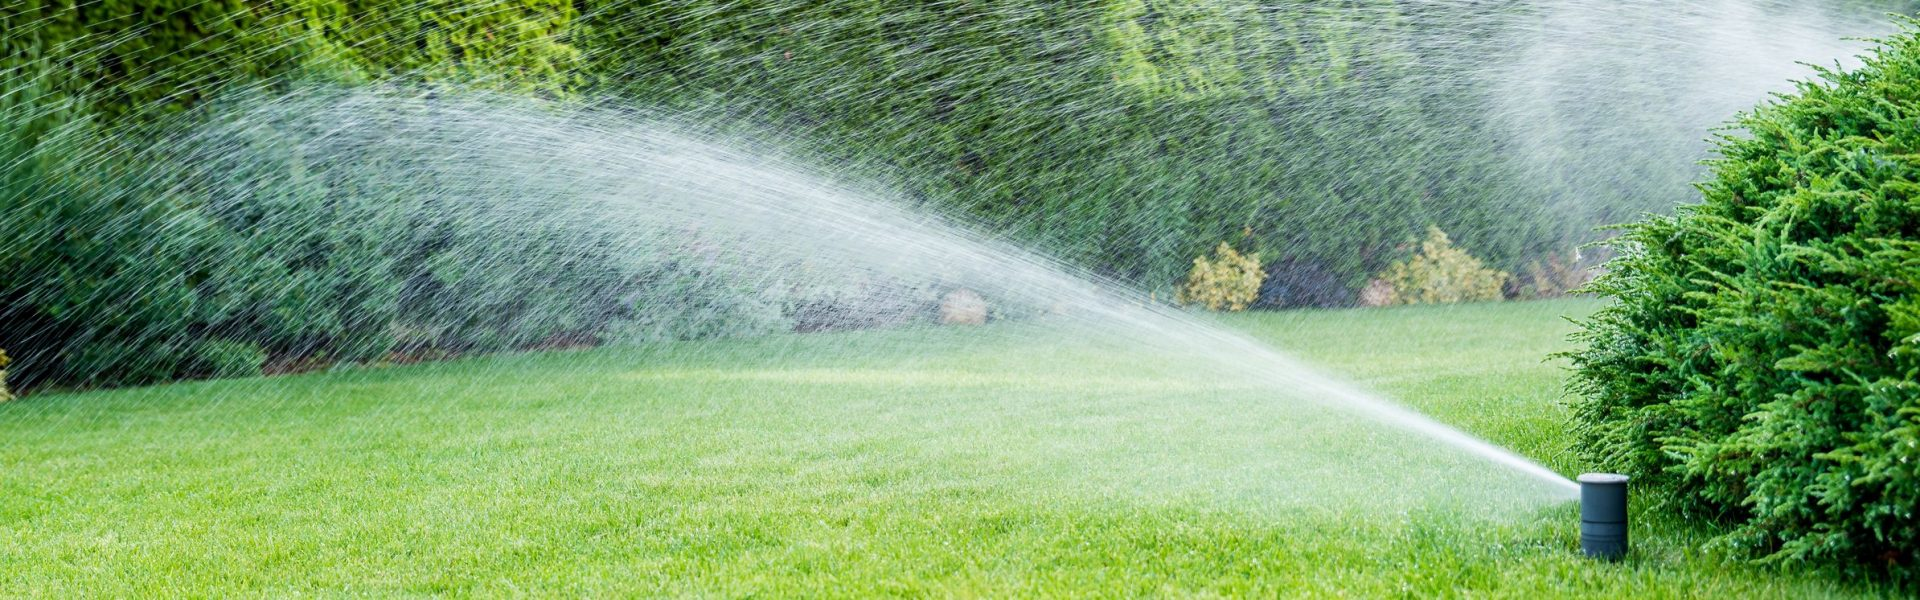 The Hollistic Aproach To Ideal Sprinkler System